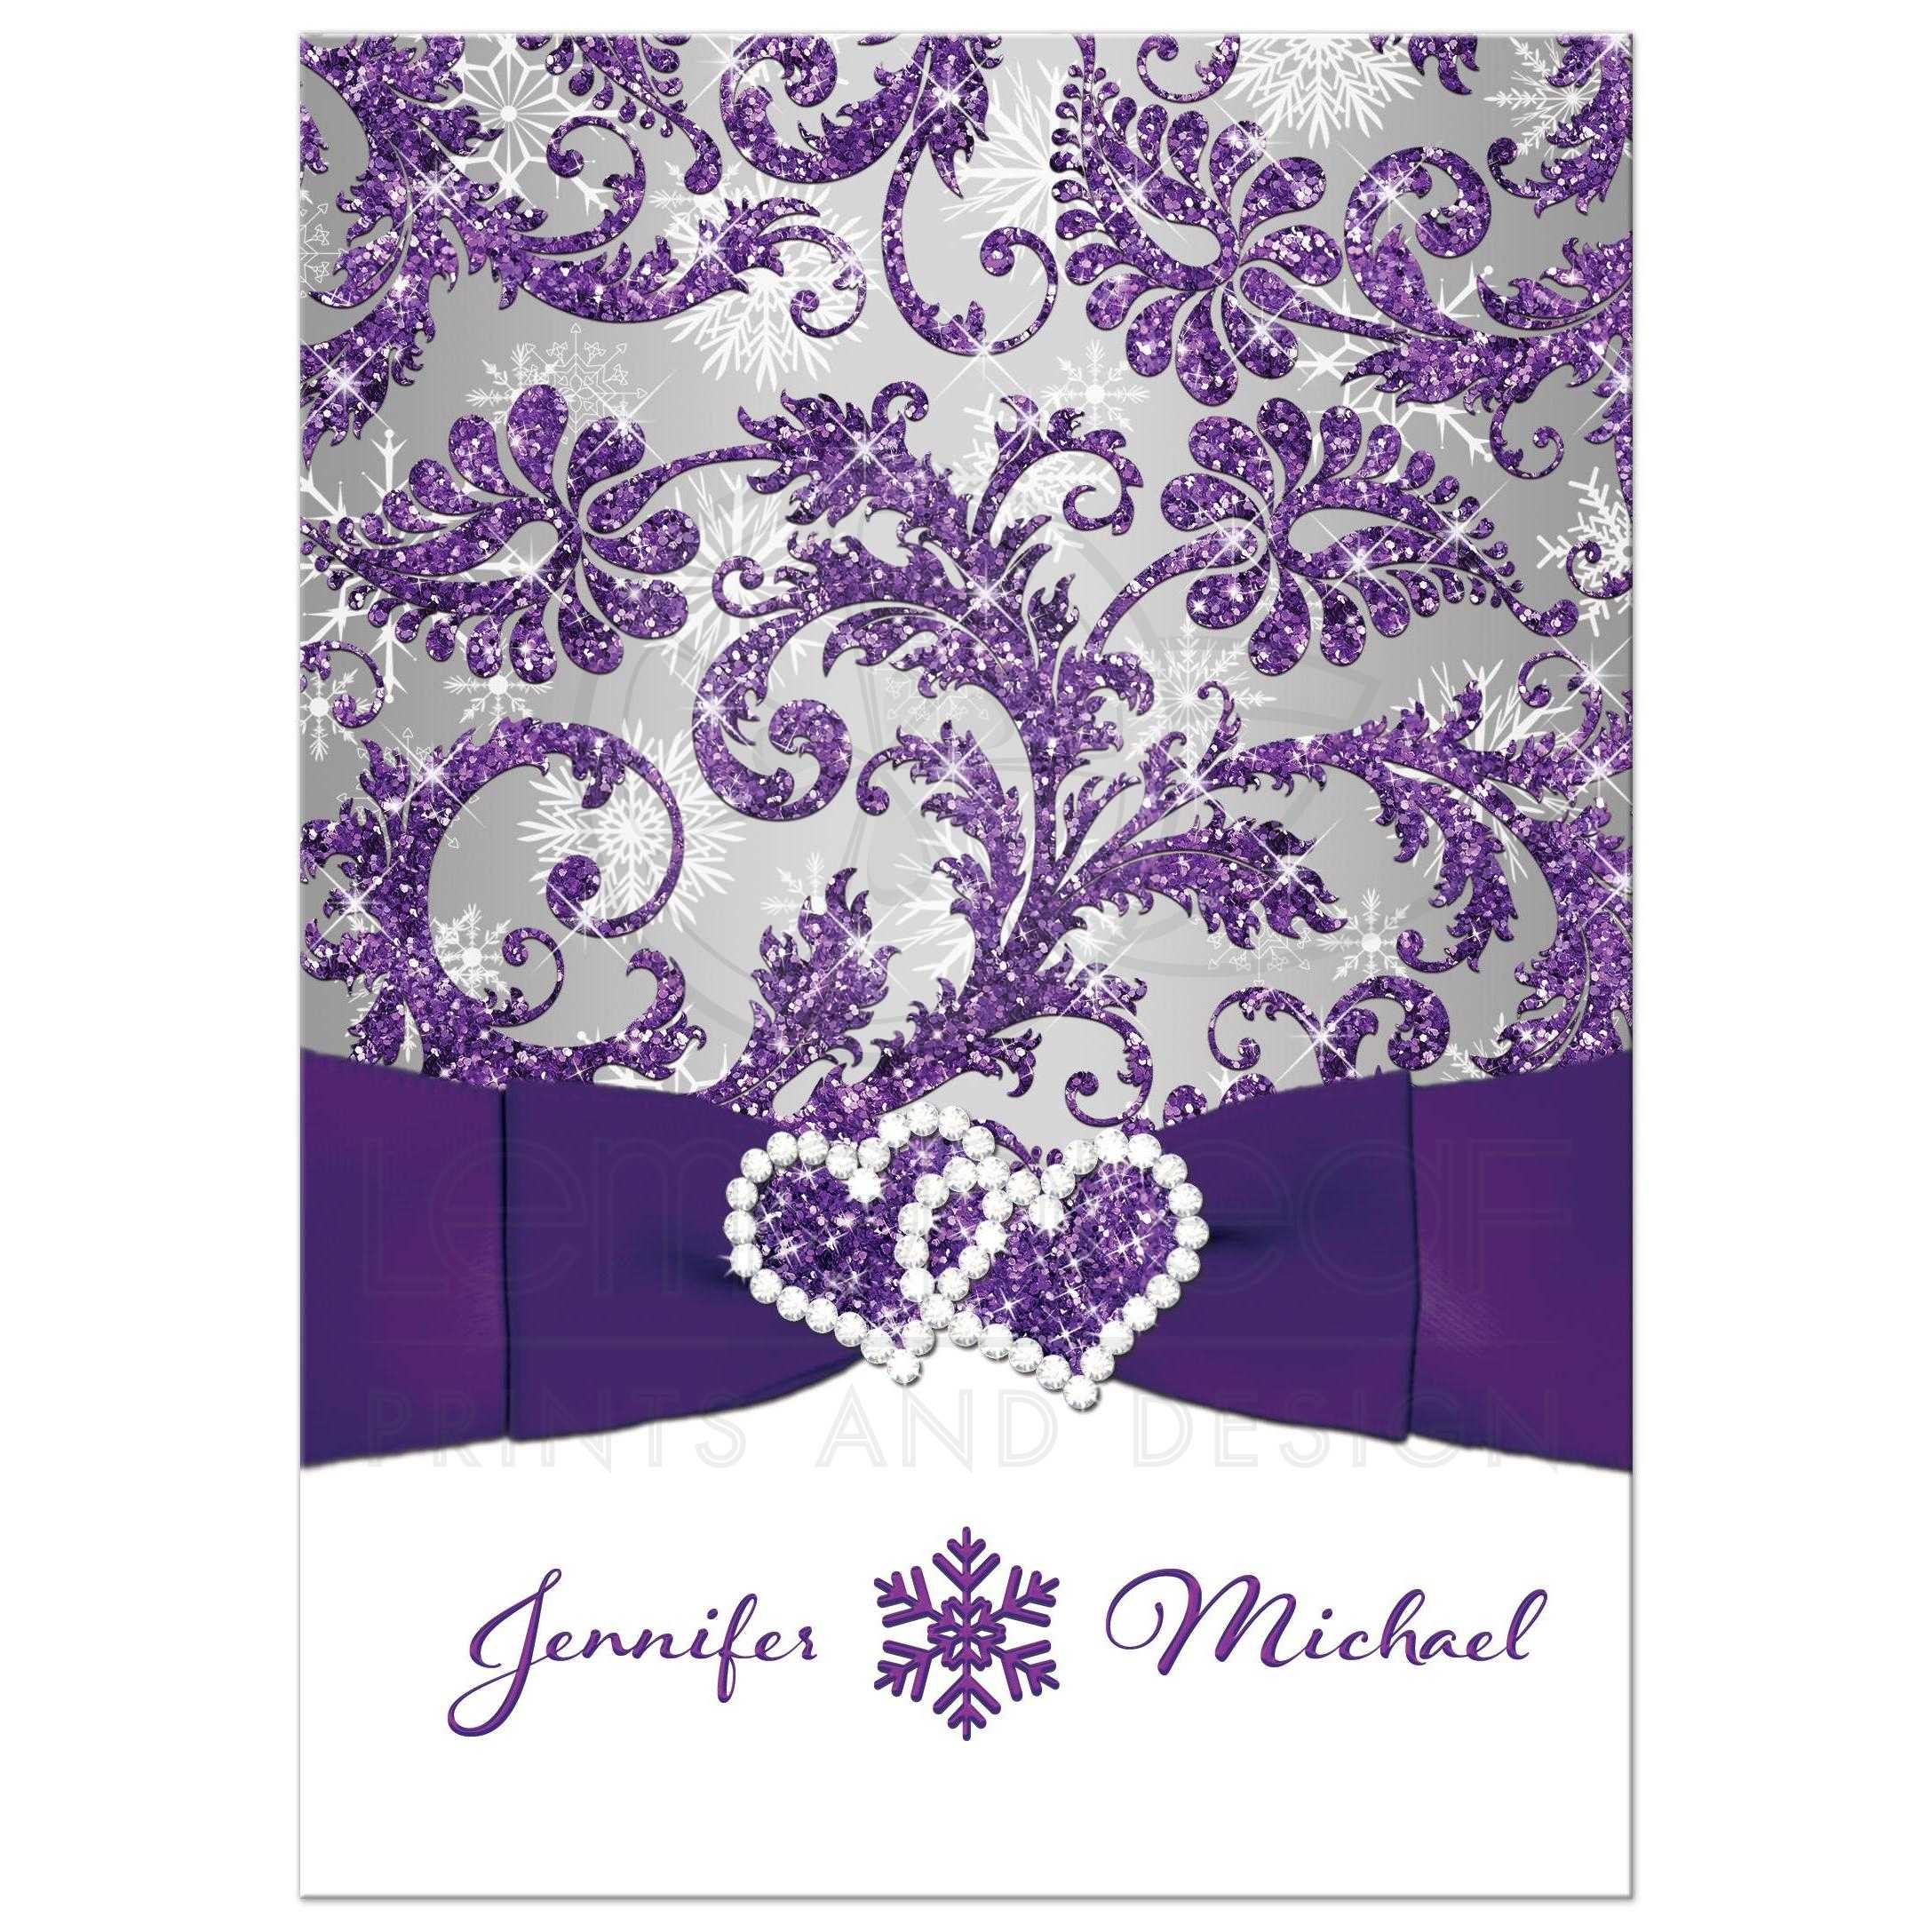 Winter wonderland wedding invitation purple silver white great winter wonderland wedding invitation in ice purple silver and white snowflakes with ribbon junglespirit Image collections